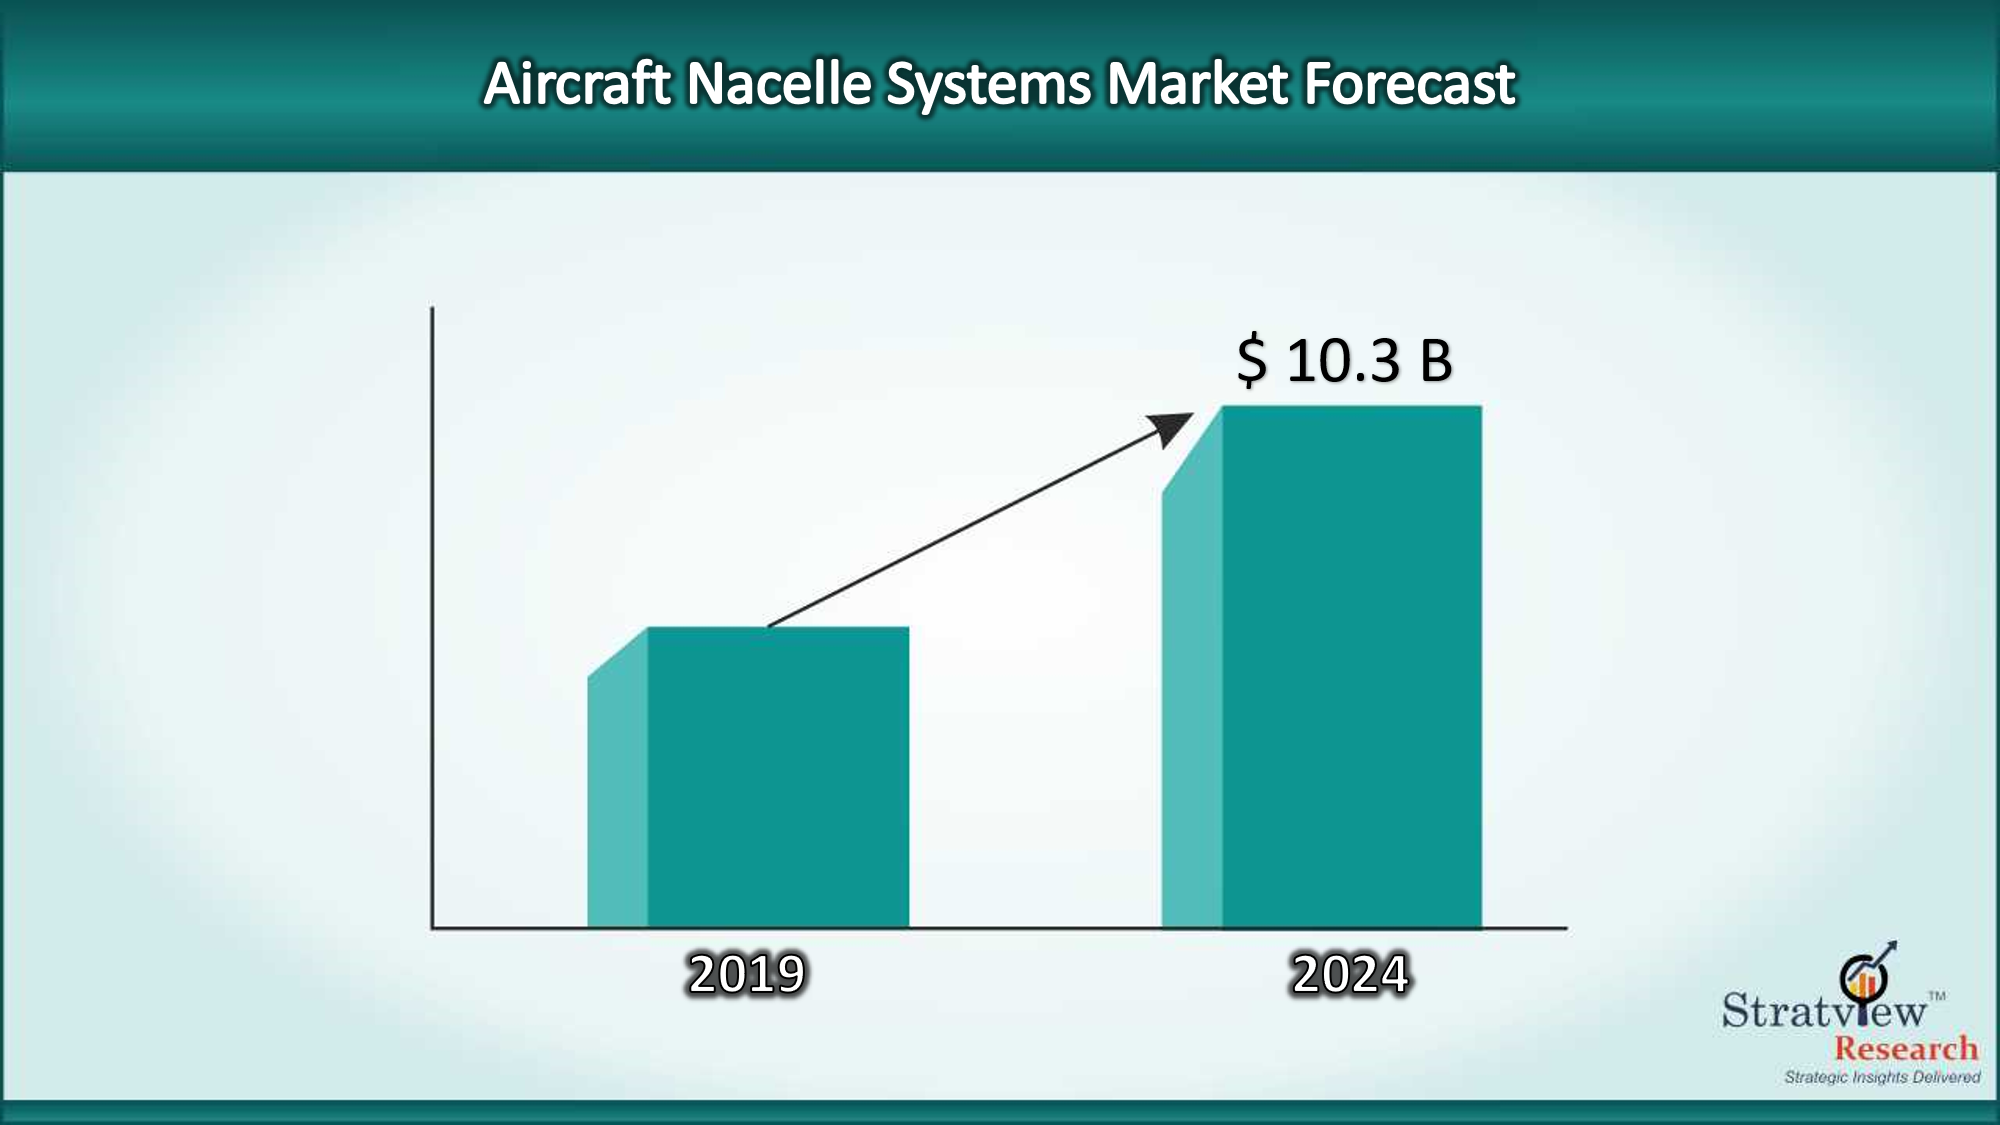 The Market of Aircraft Nacelle Systems to grow beyond US$ 10.3 billion by 2024